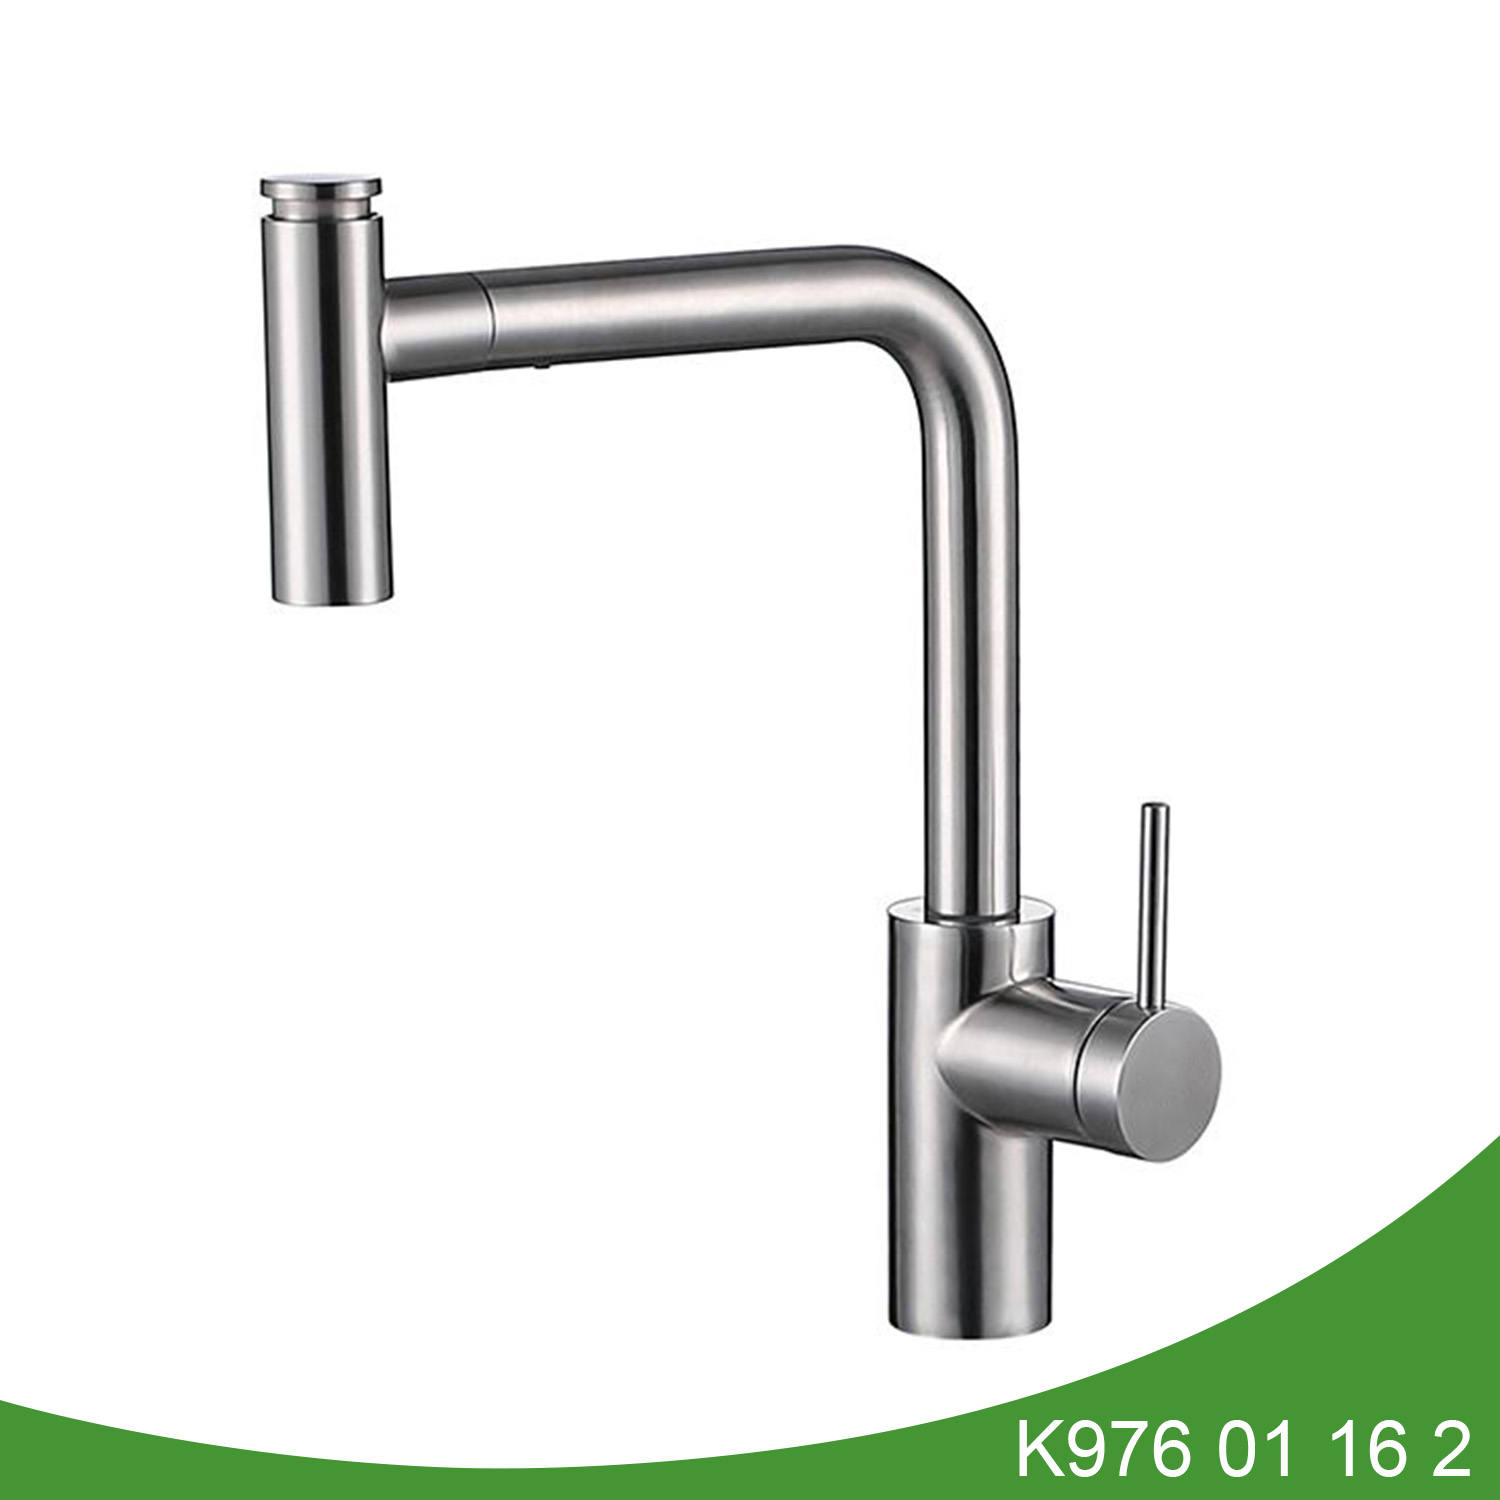 Stainless steel pull out kitchen tap K976 01 16 2